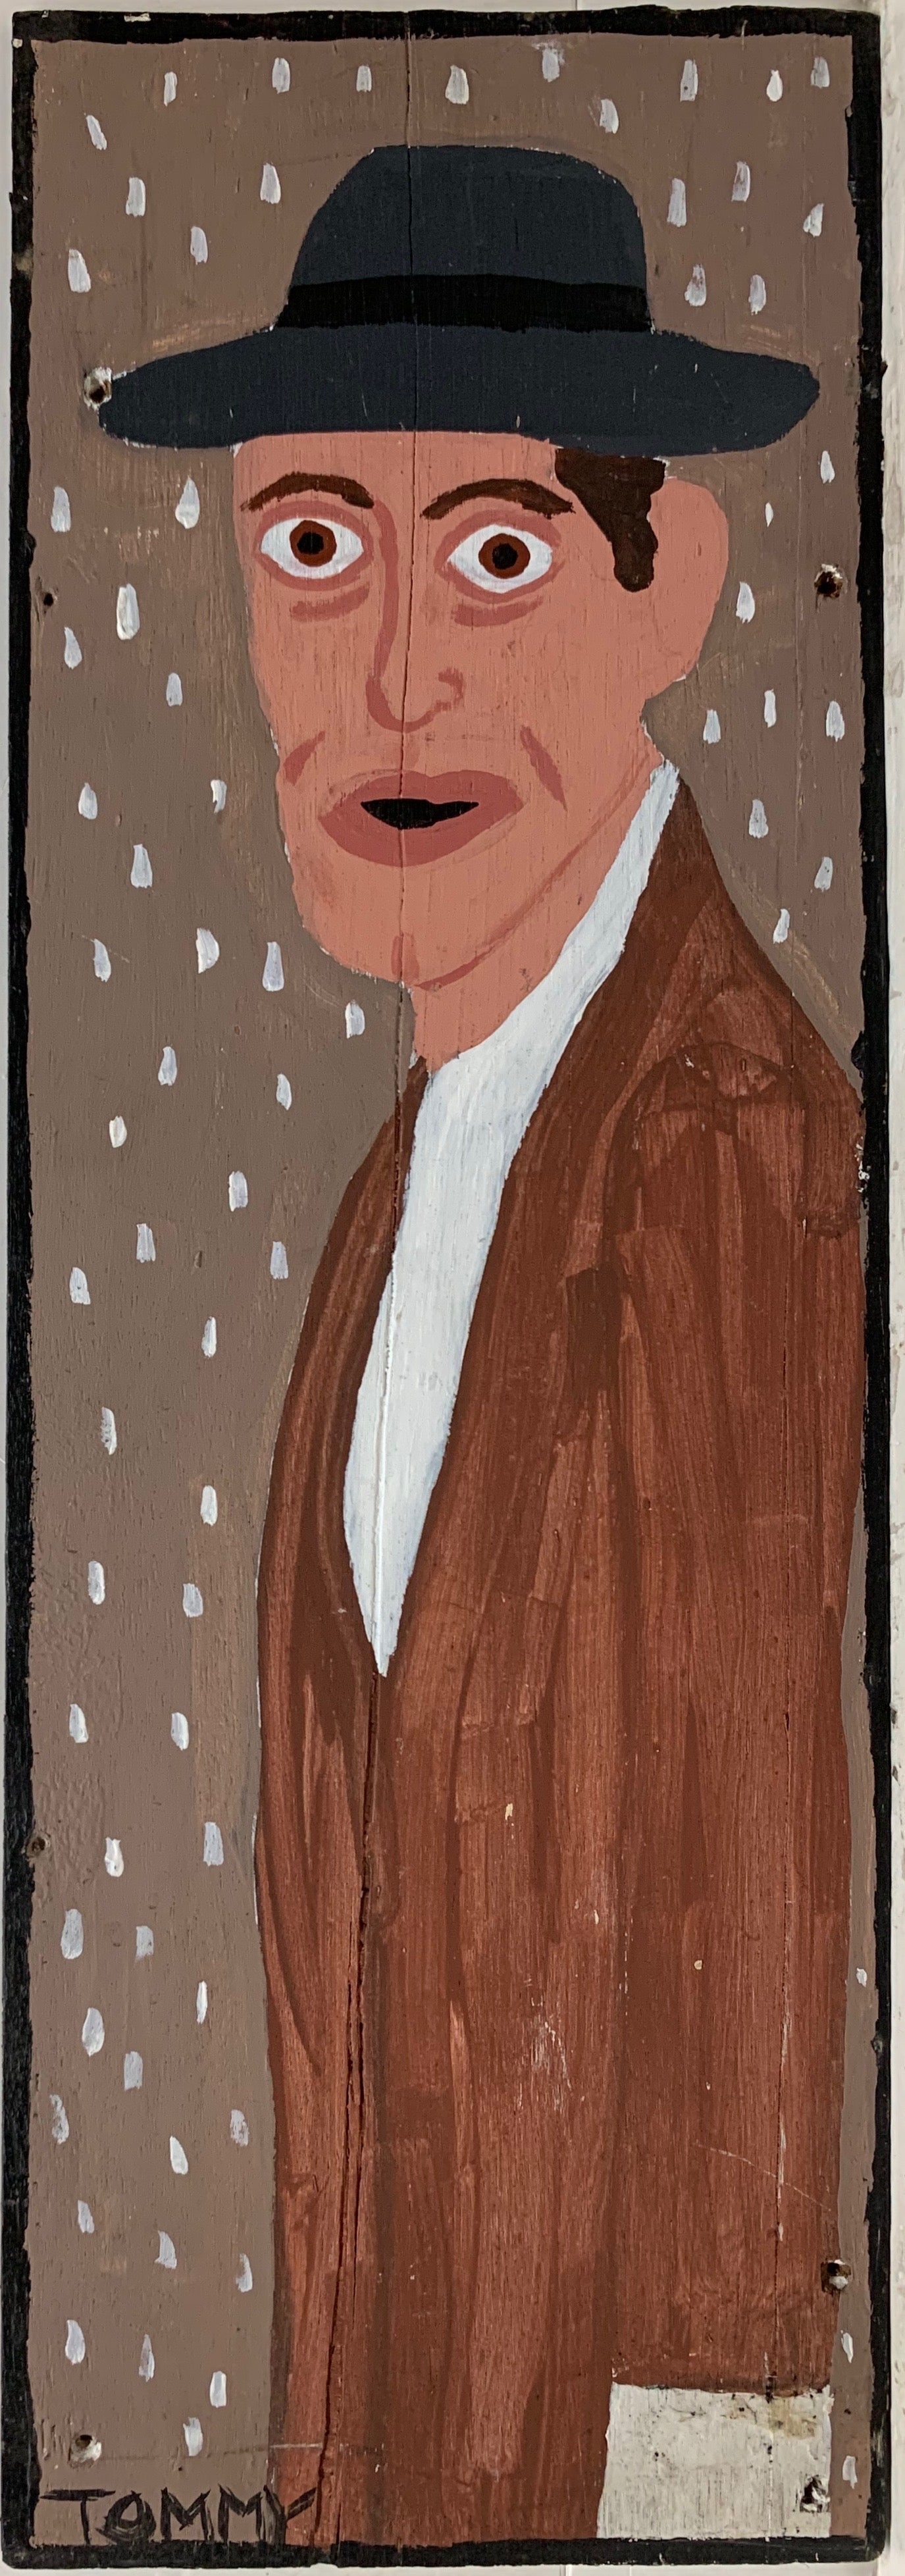 A Tommy Cheng portrait of Willem Dafoe in a black hat and a brown coat.